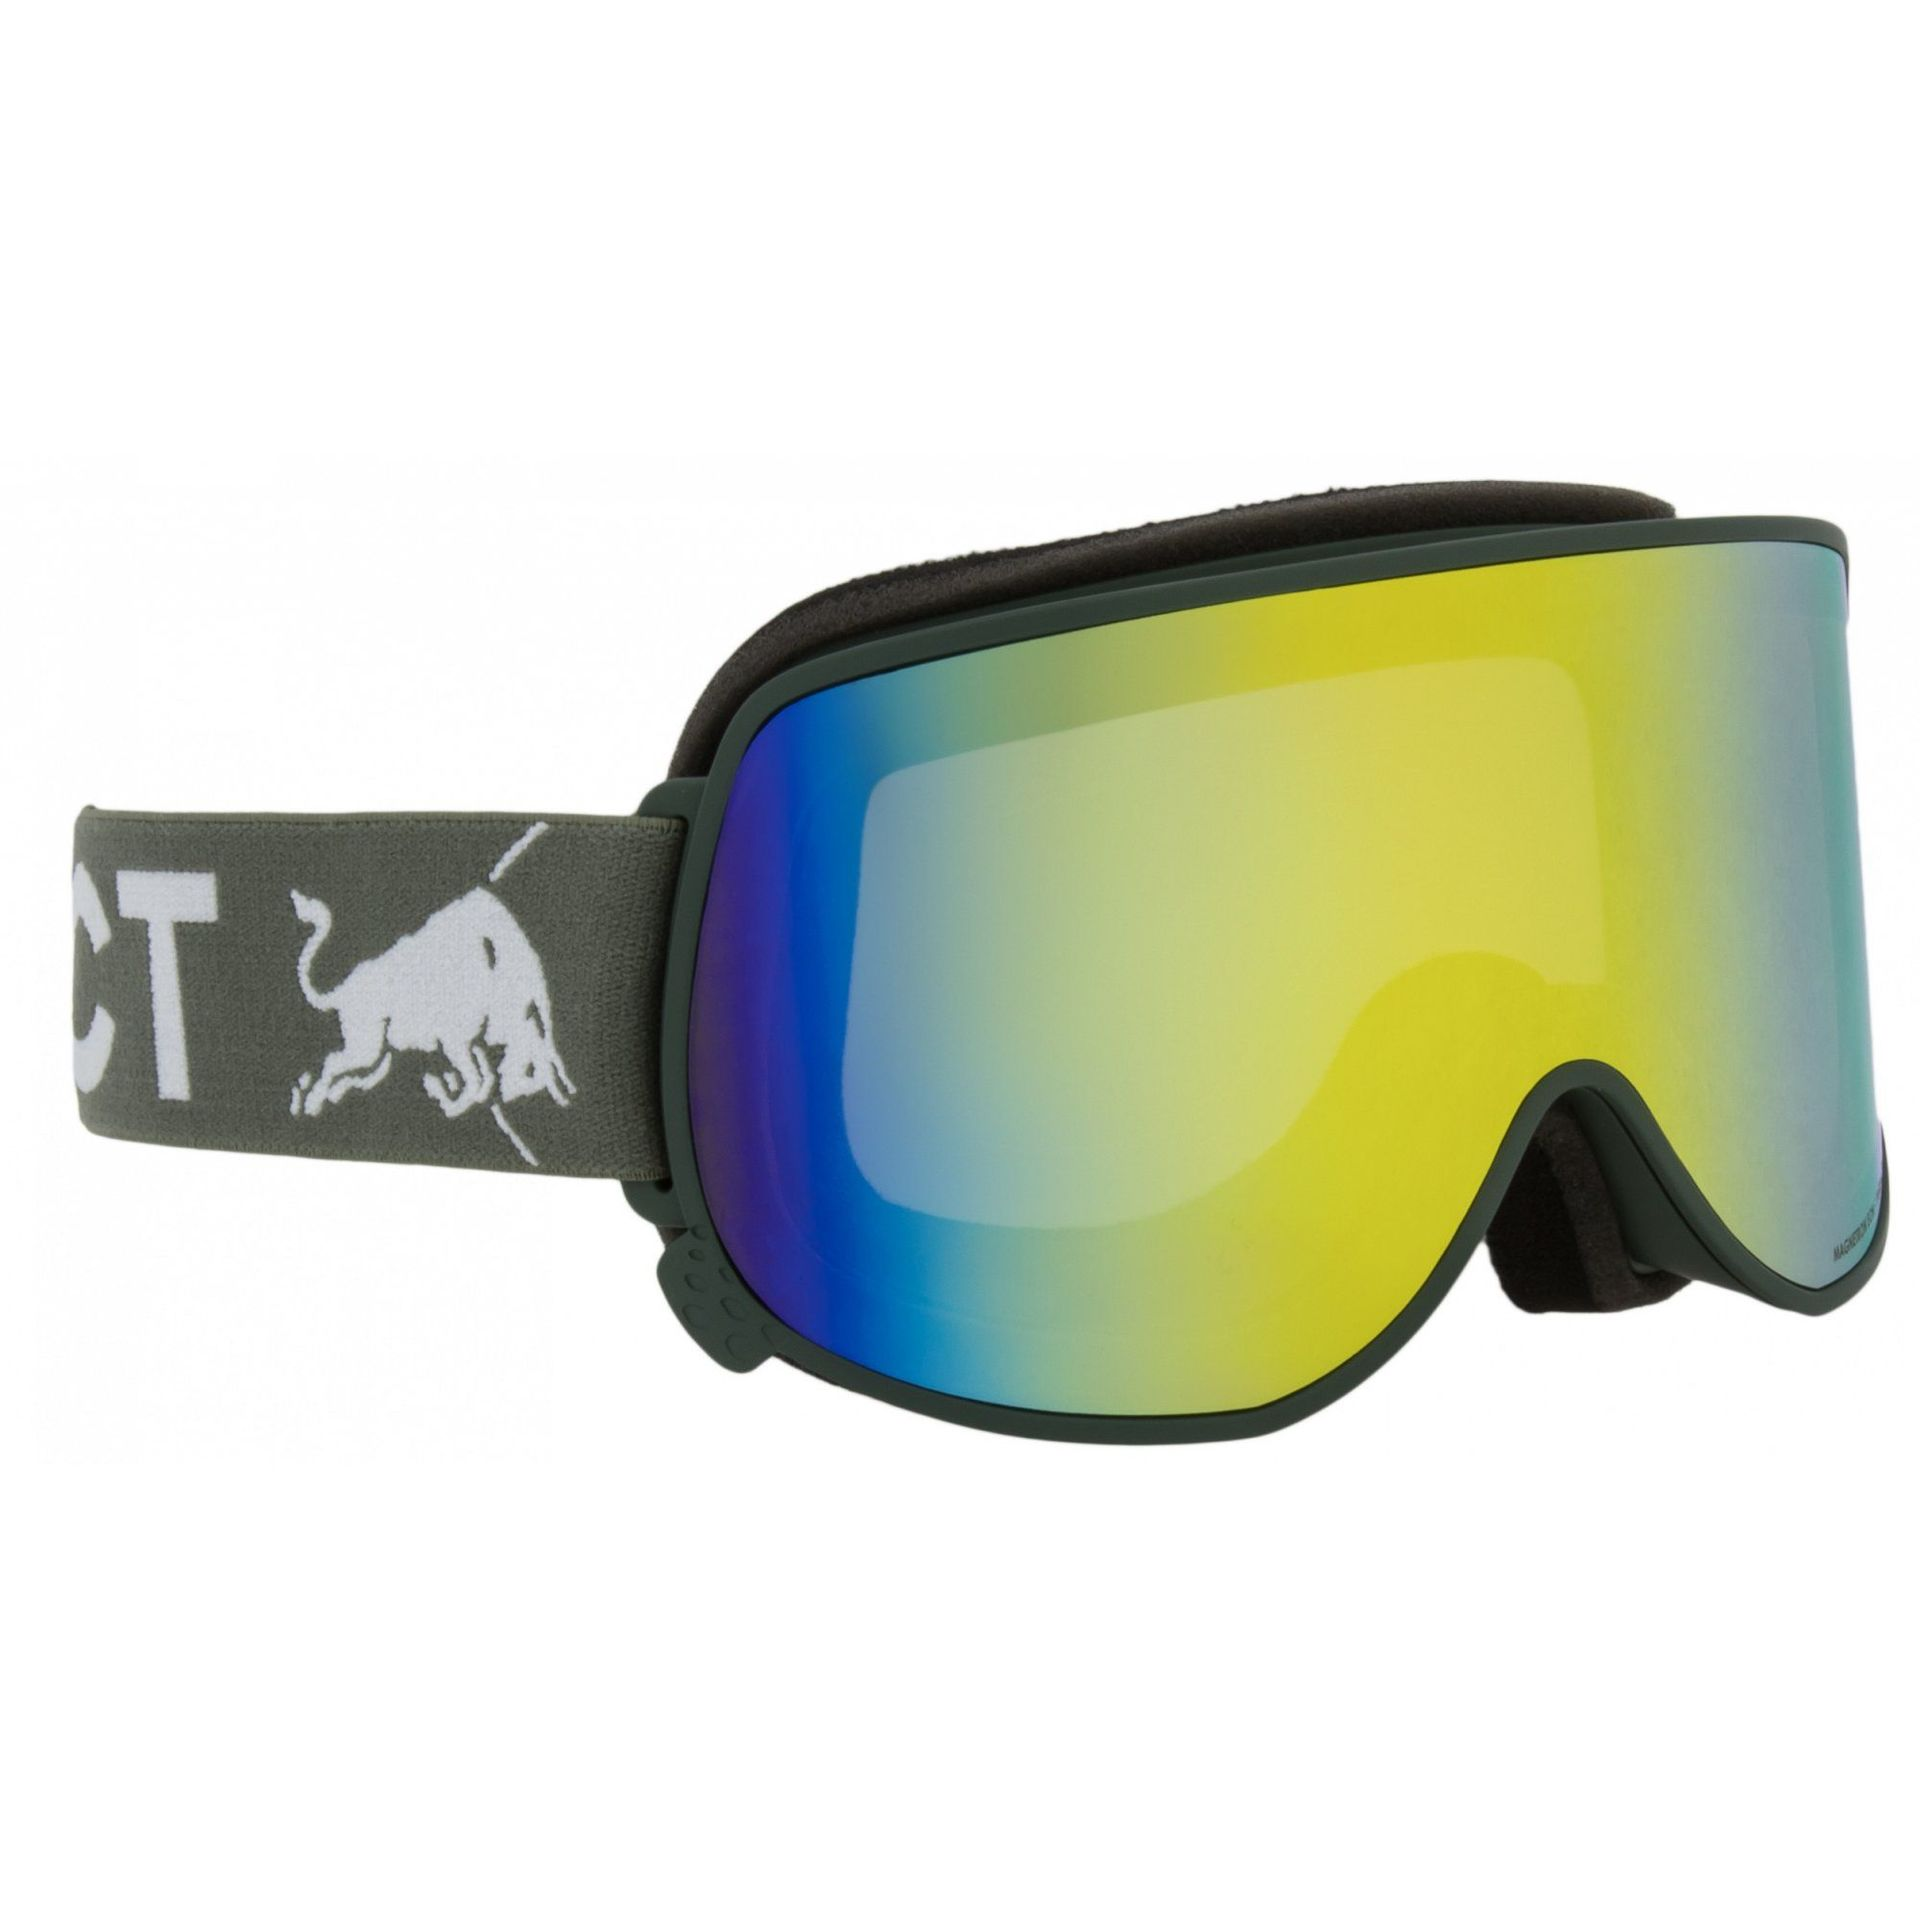 GOGLE RED BULL SPECT MAGNETRON EON OLIVE GREEN|YELLOW SNOW 1